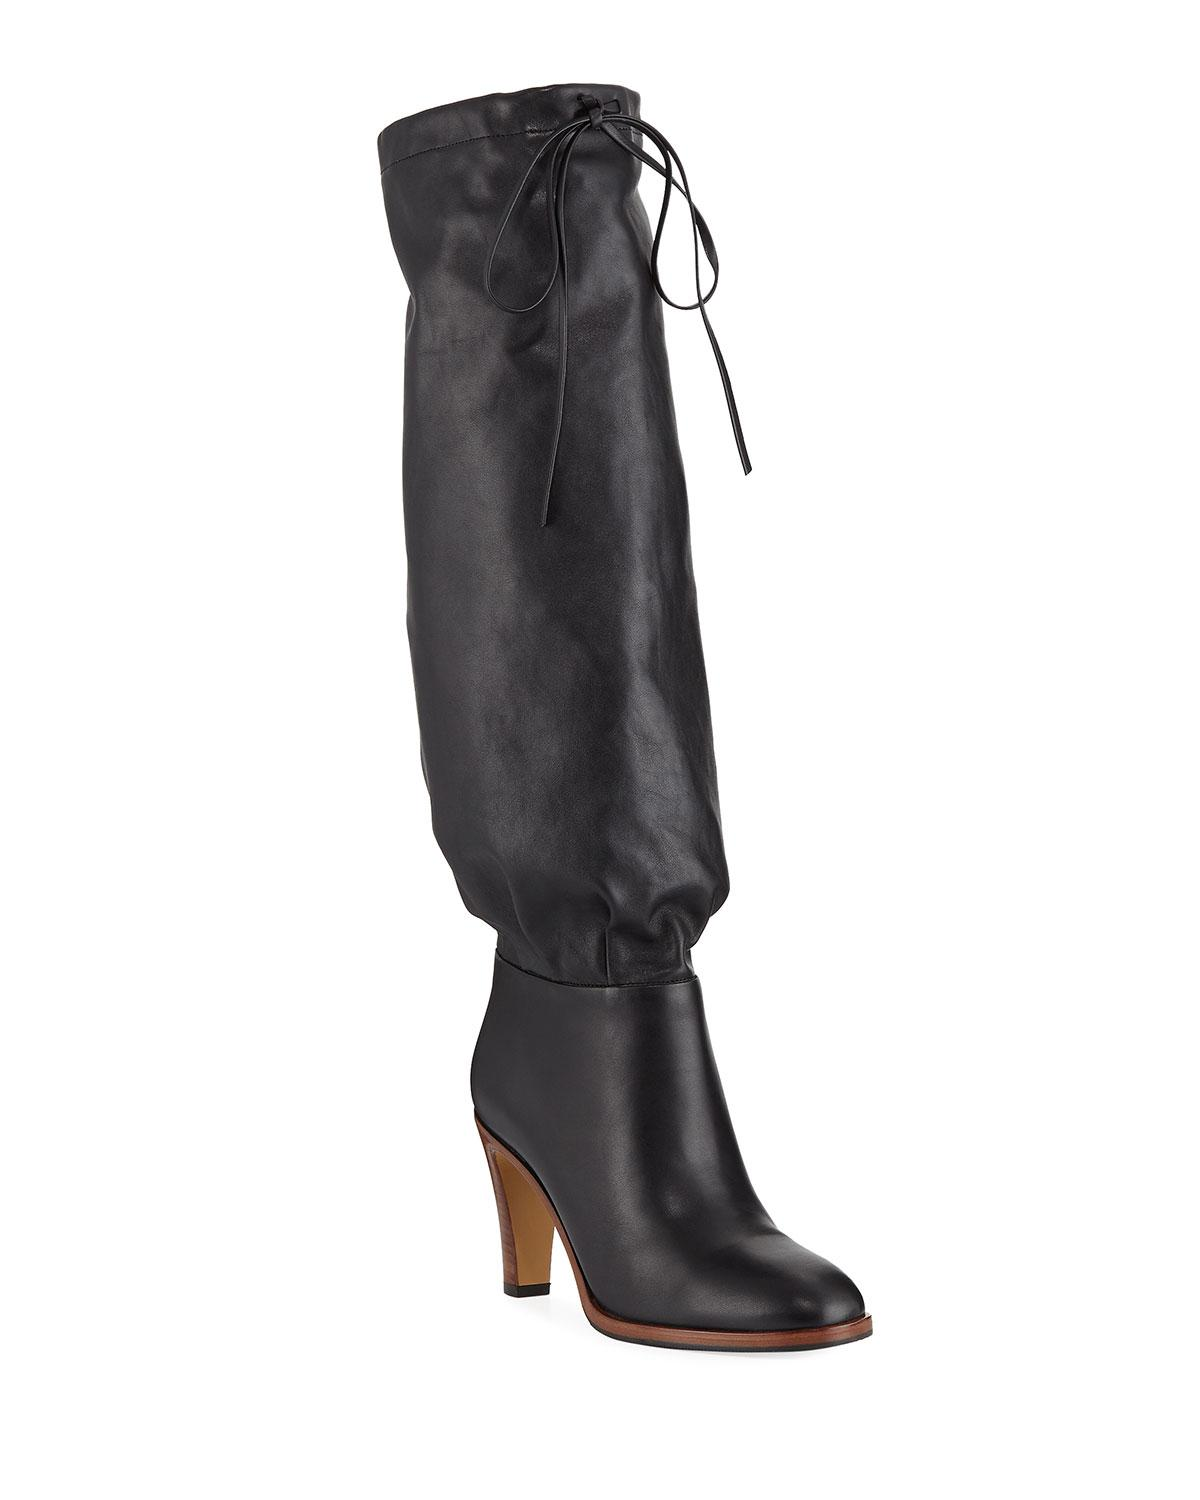 a822cff6ebca Lyst - Gucci Leather Self-tie Knee Boots in Black